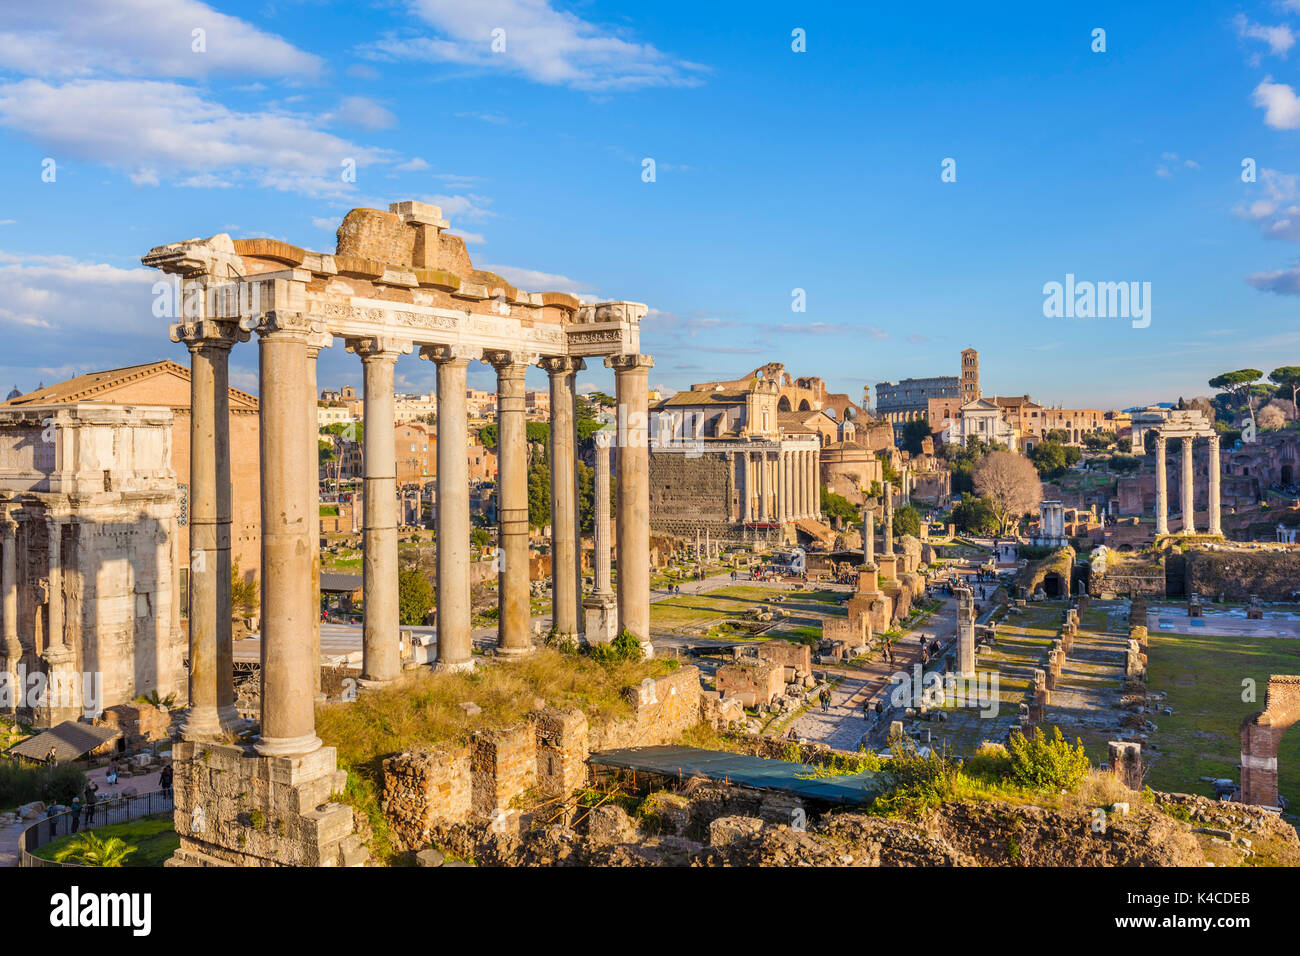 Rome Italy The columns of the Temple of Saturn and overview of the ruined Roman Forum, UNESCO World Heritage Site, Rome, Lazio, Italy, Europe - Stock Image